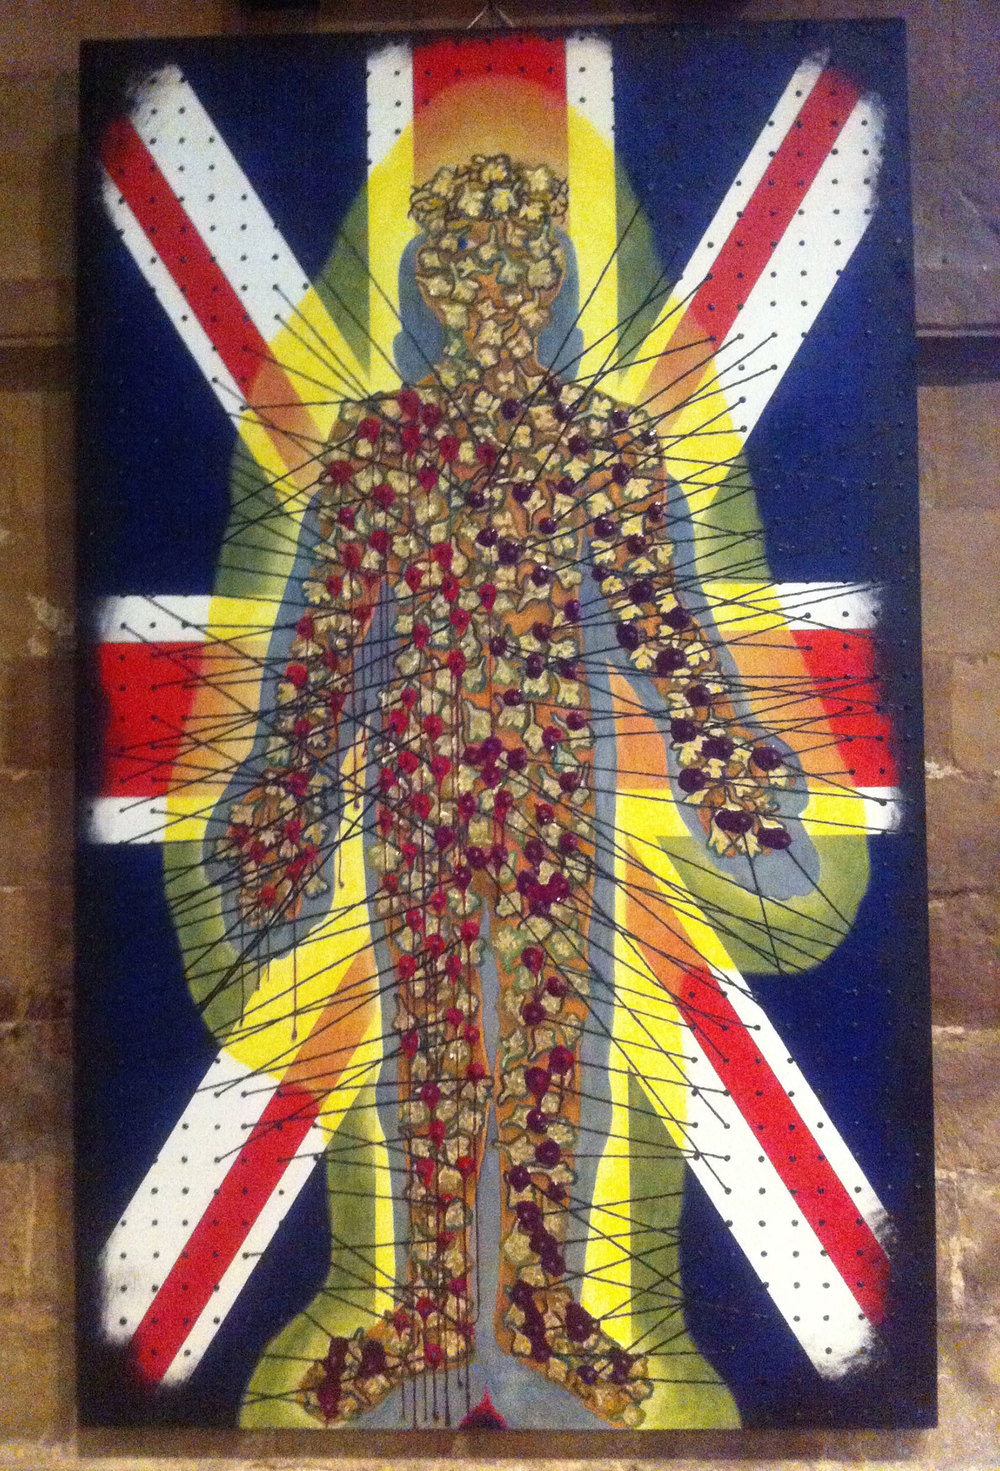 Hawthorn Man Oil on canvas 2013 on show in Southwell Minster in the Seed Blood Exhibition 2014 commemorating-the beginning of the First World War